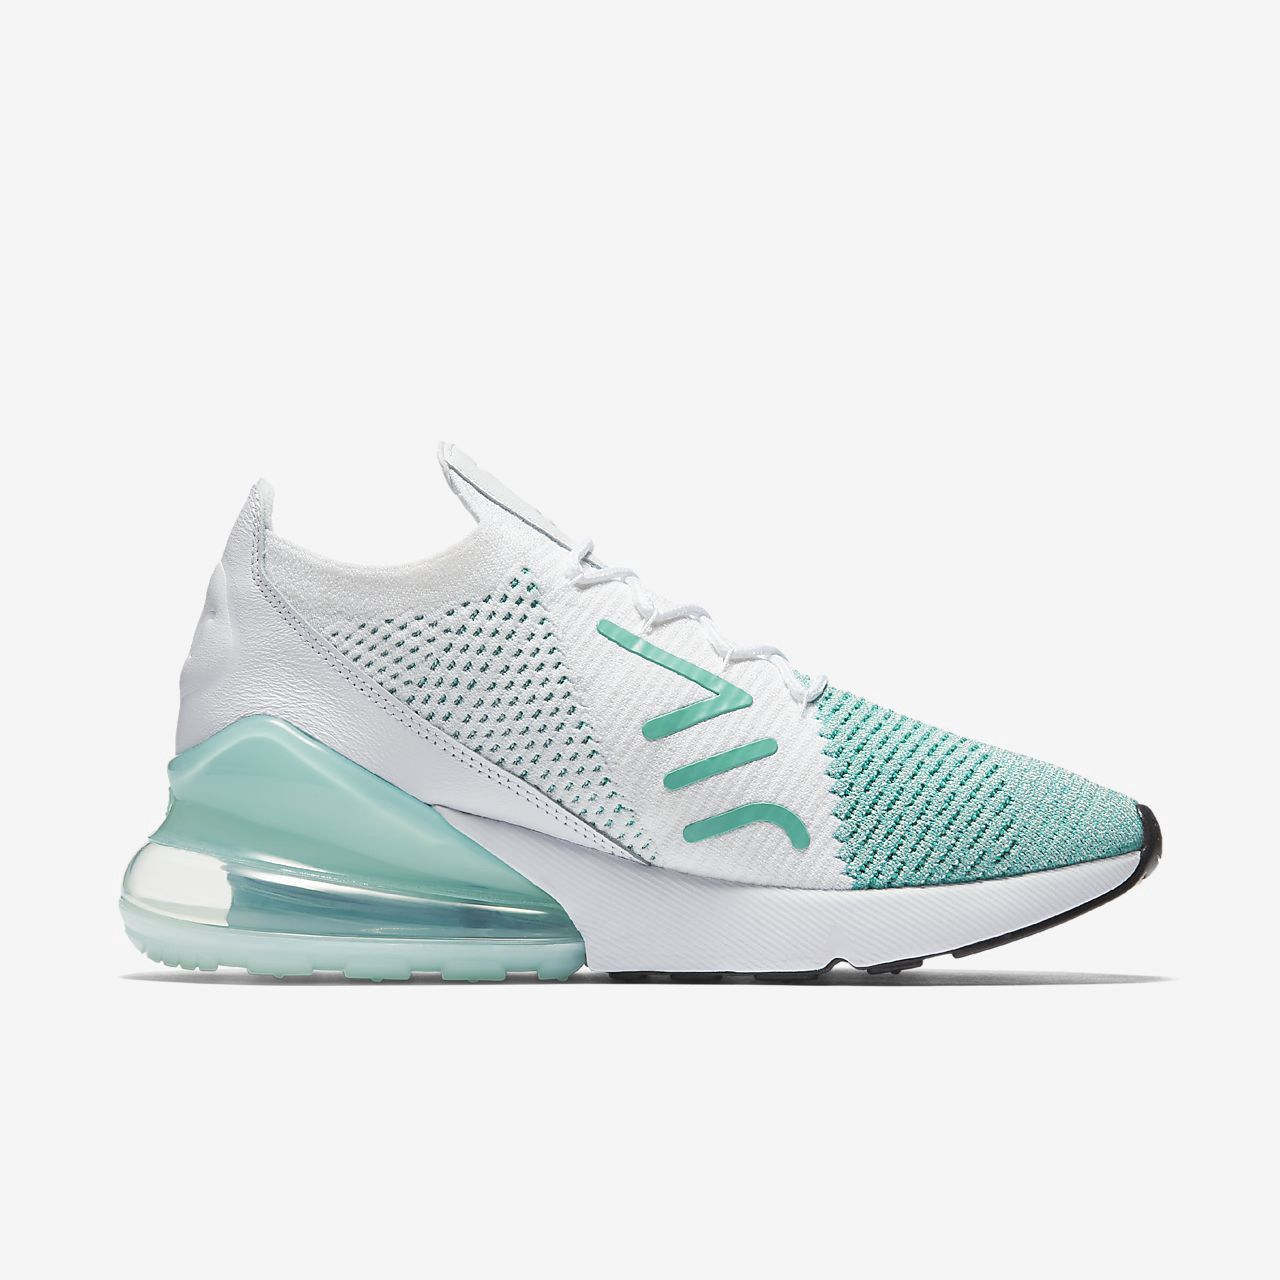 Nike Air Max 270 Flyknit Women's Shoe 5 Loafers for